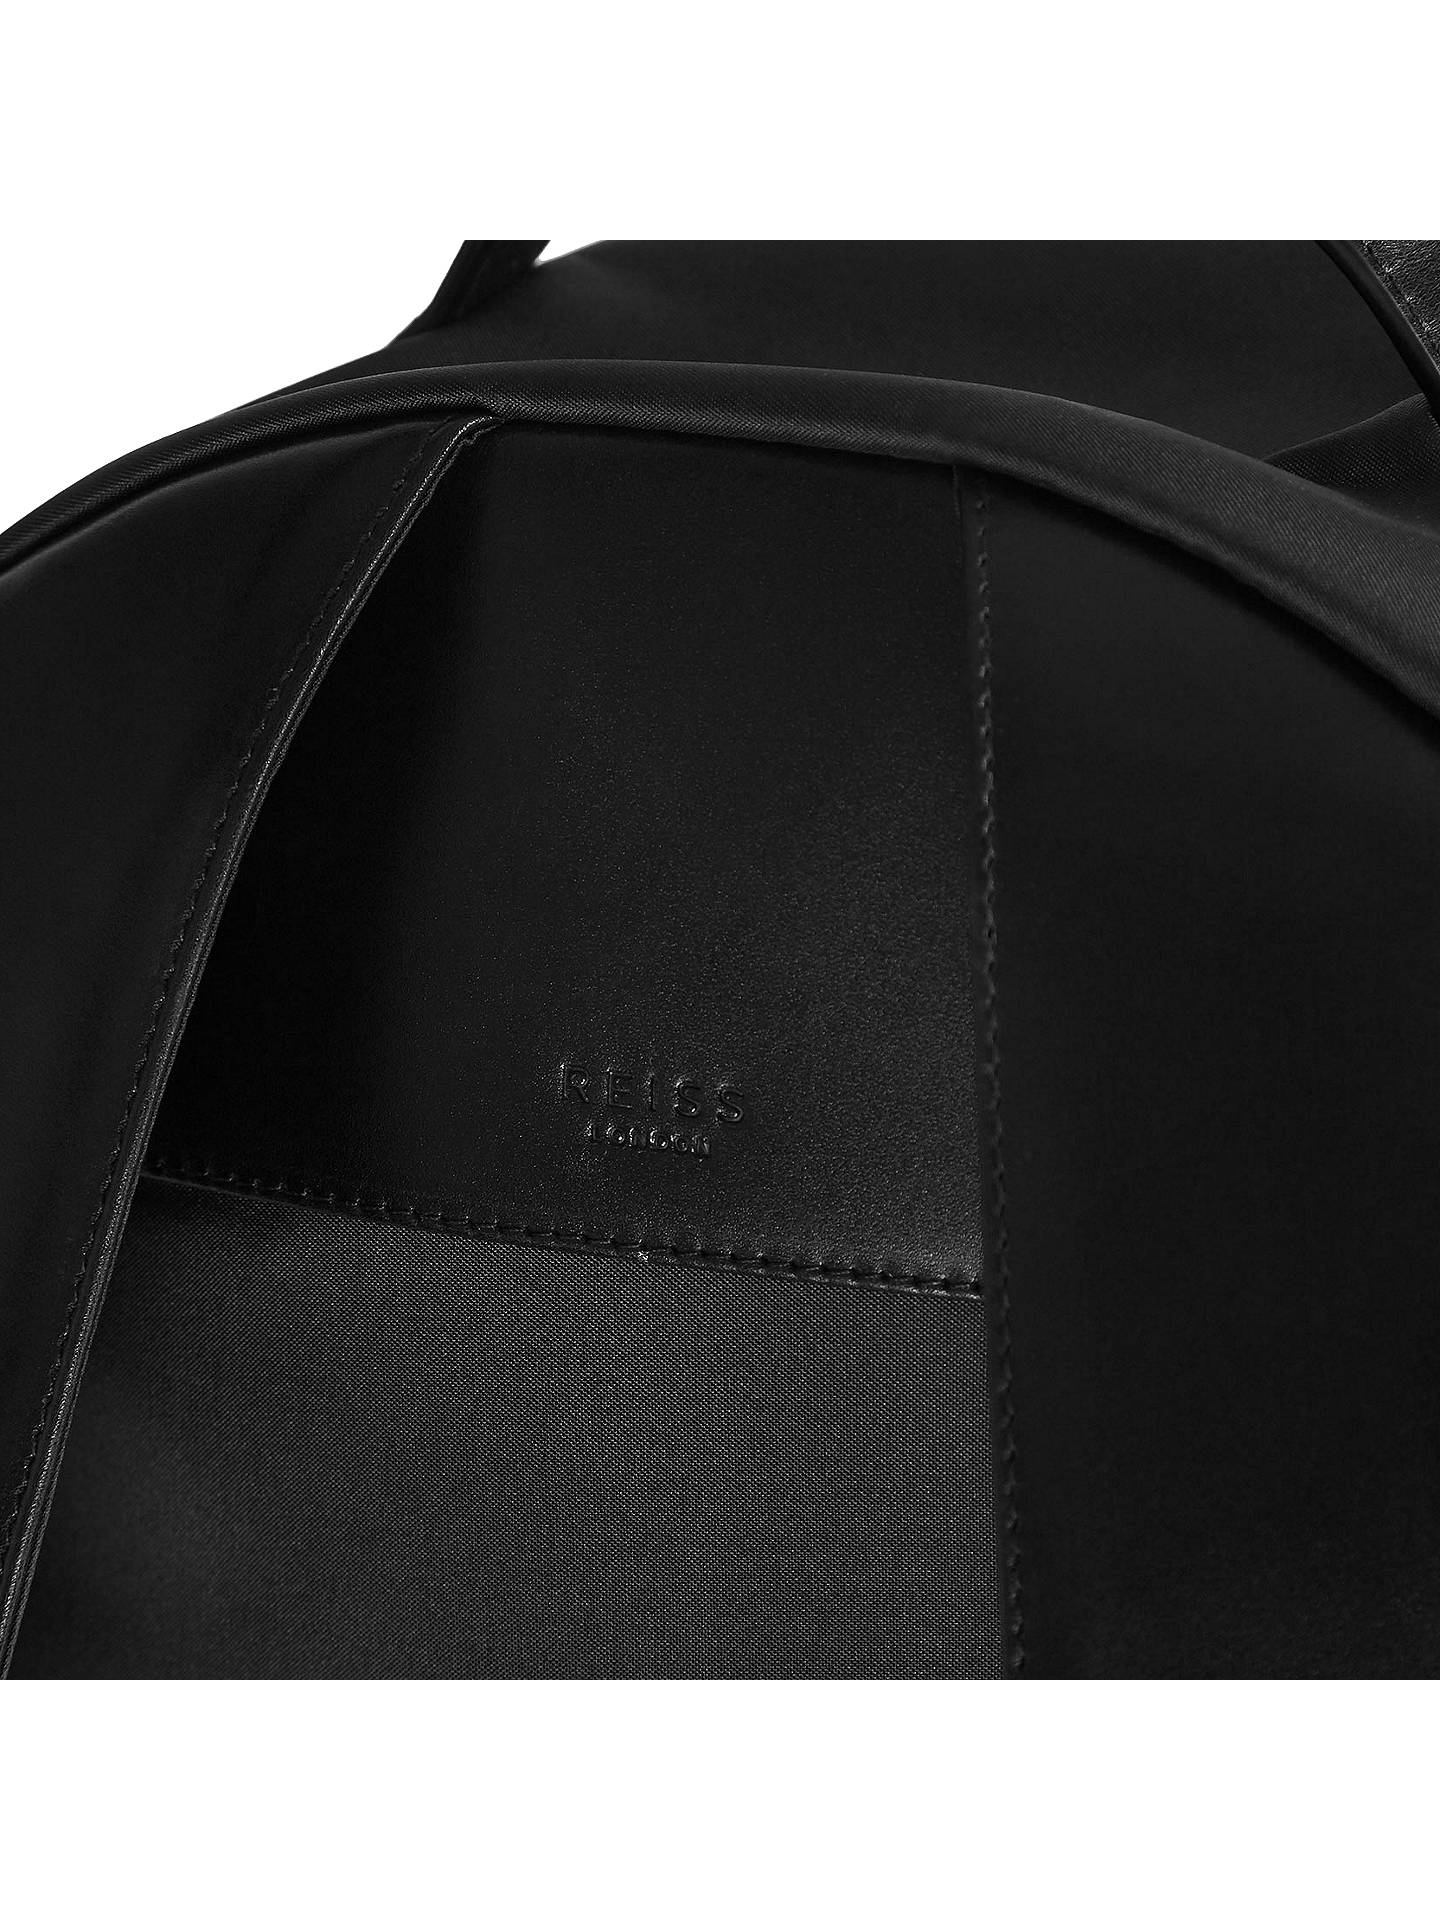 BuyReiss Ginger Backpack, Black Online at johnlewis.com